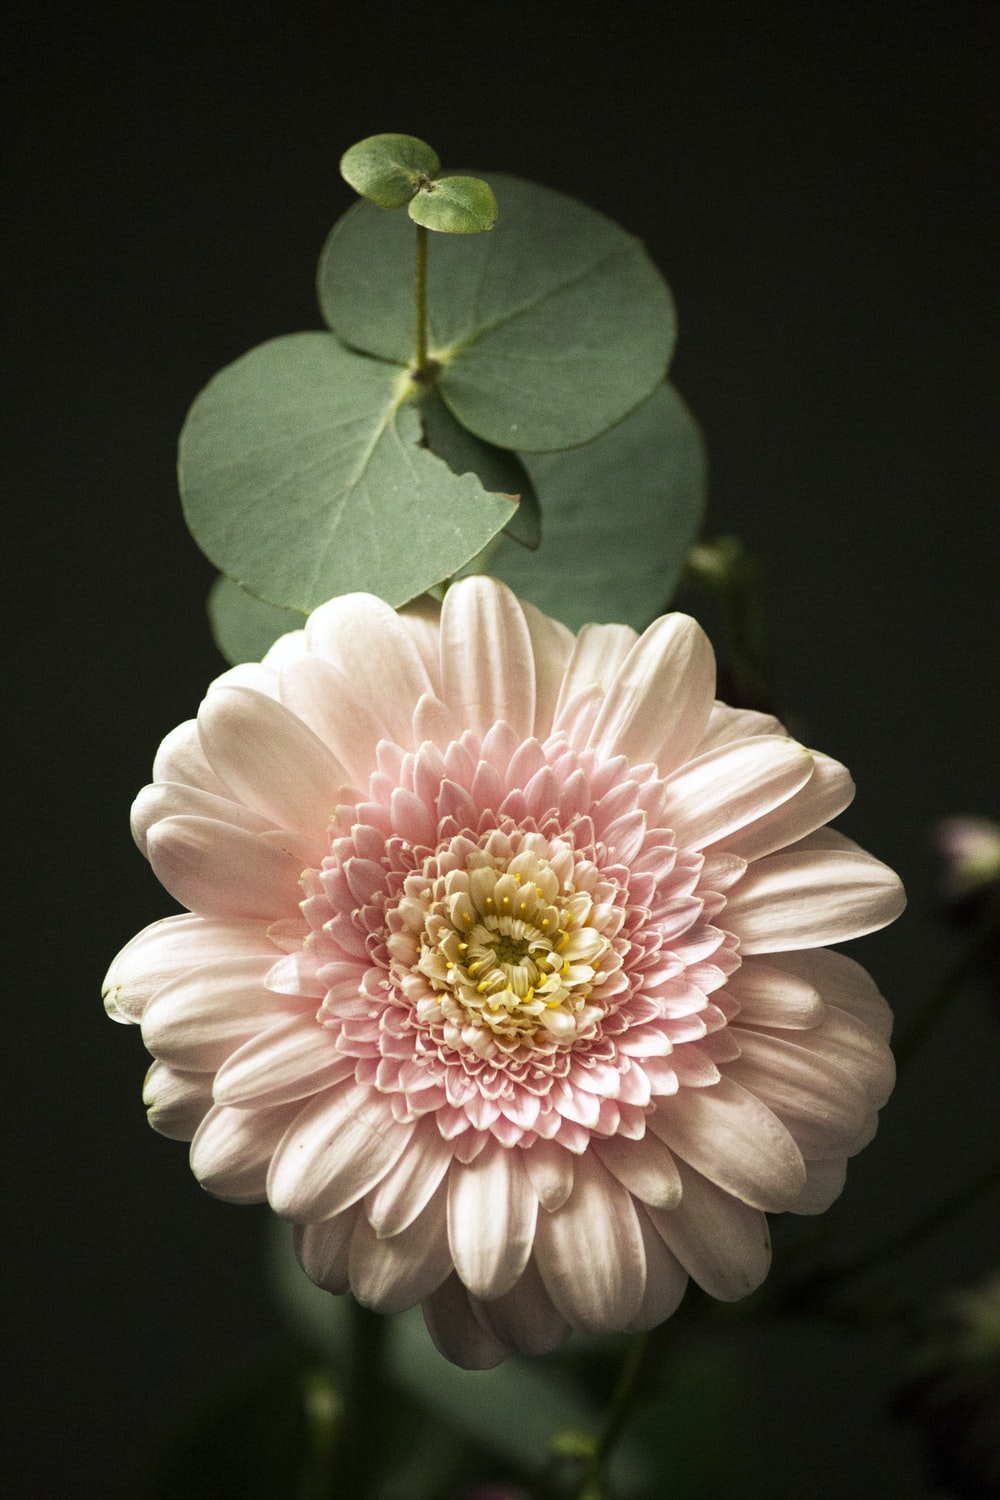 pink and white flower in macro shot